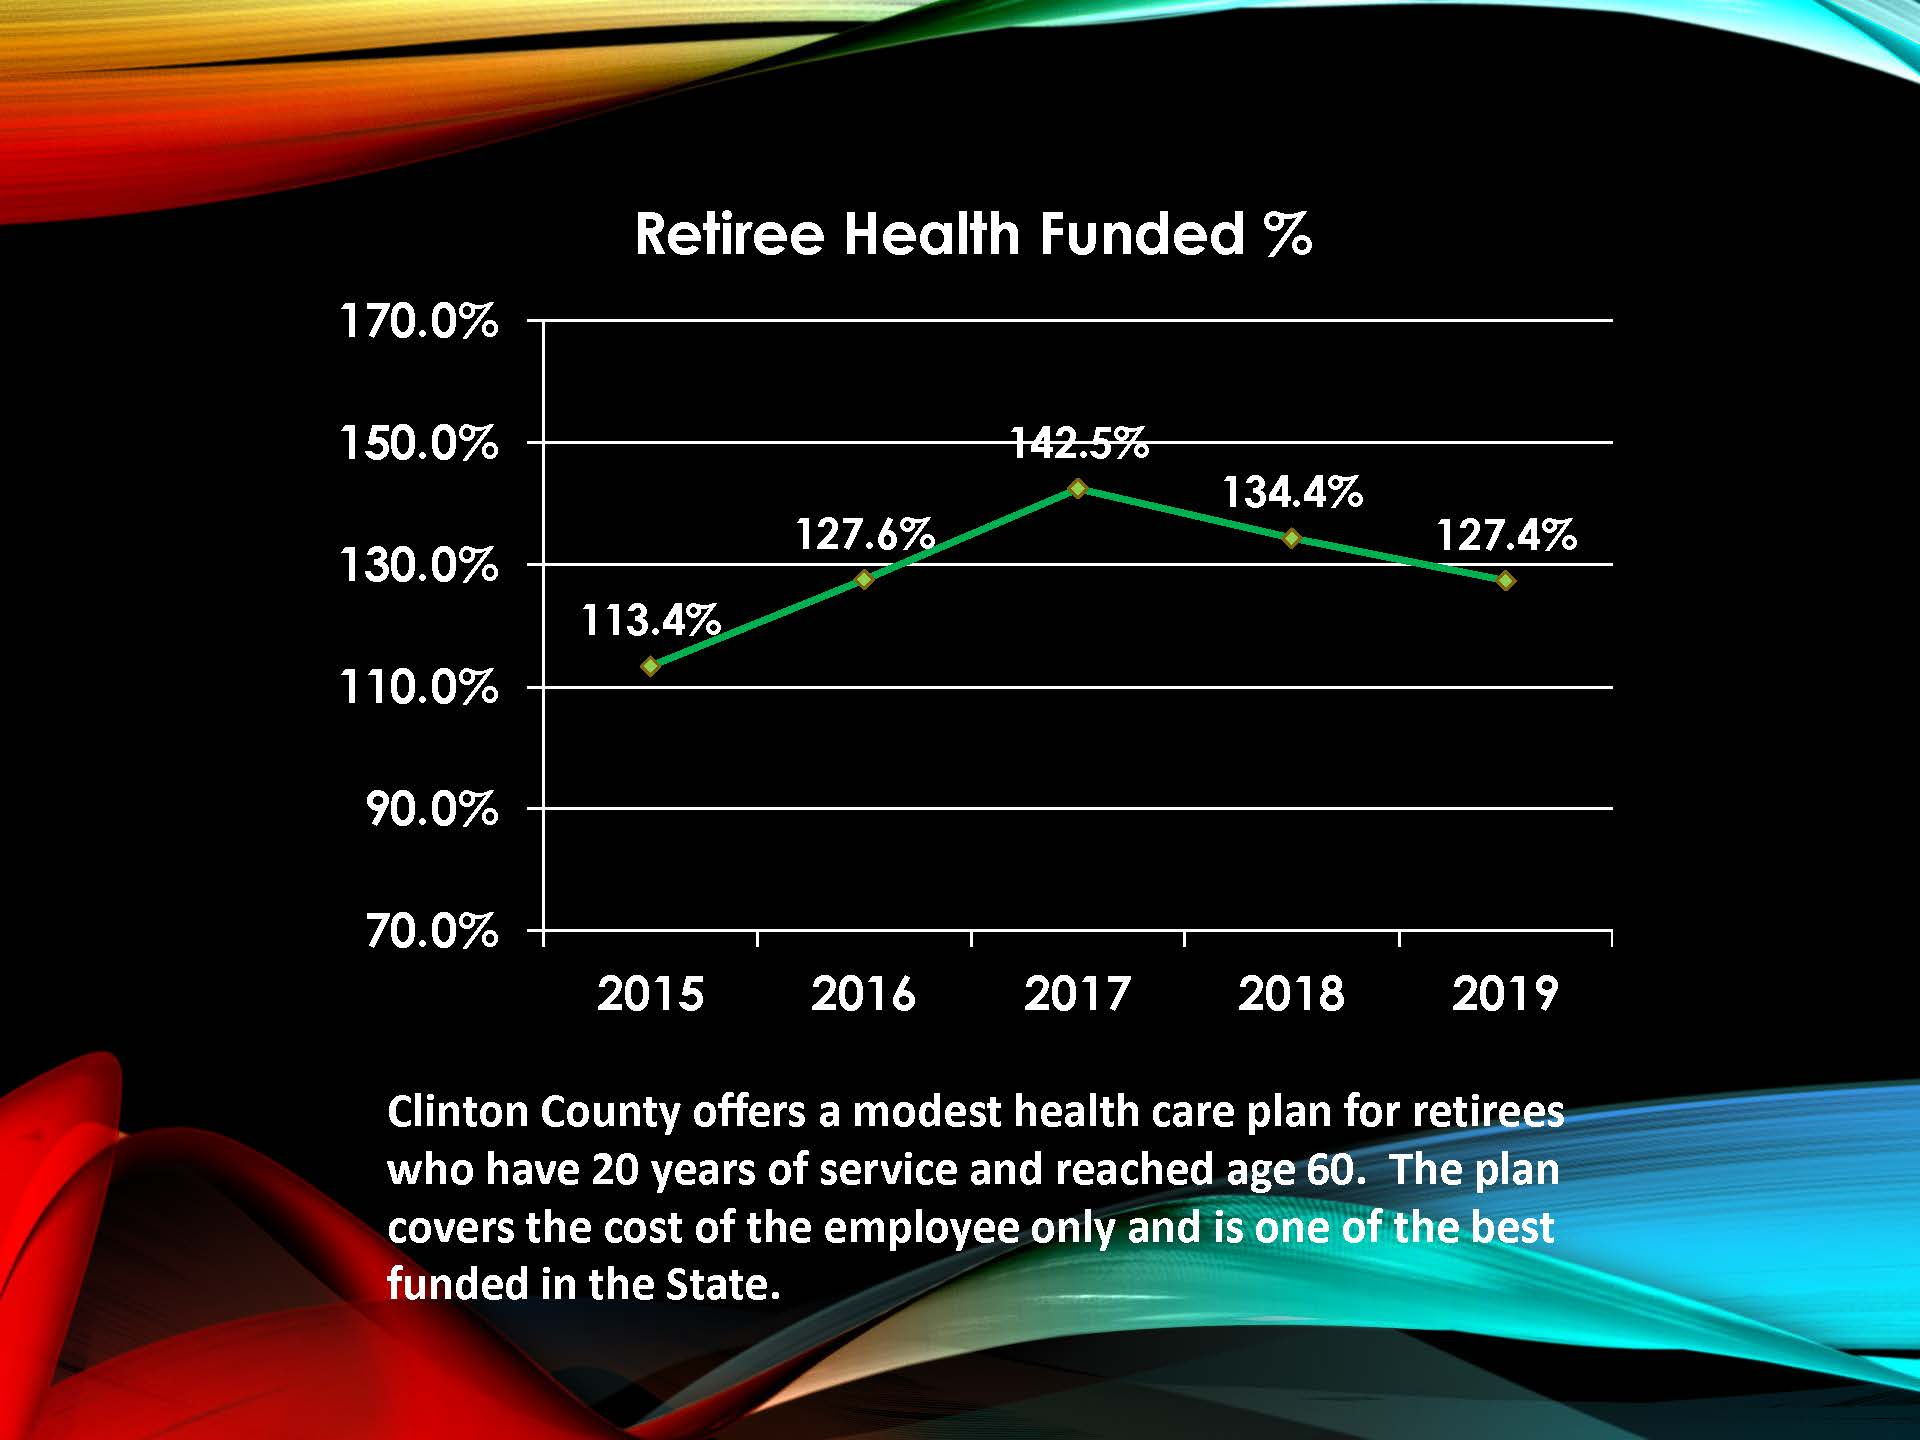 Retiree Health Funded Chart